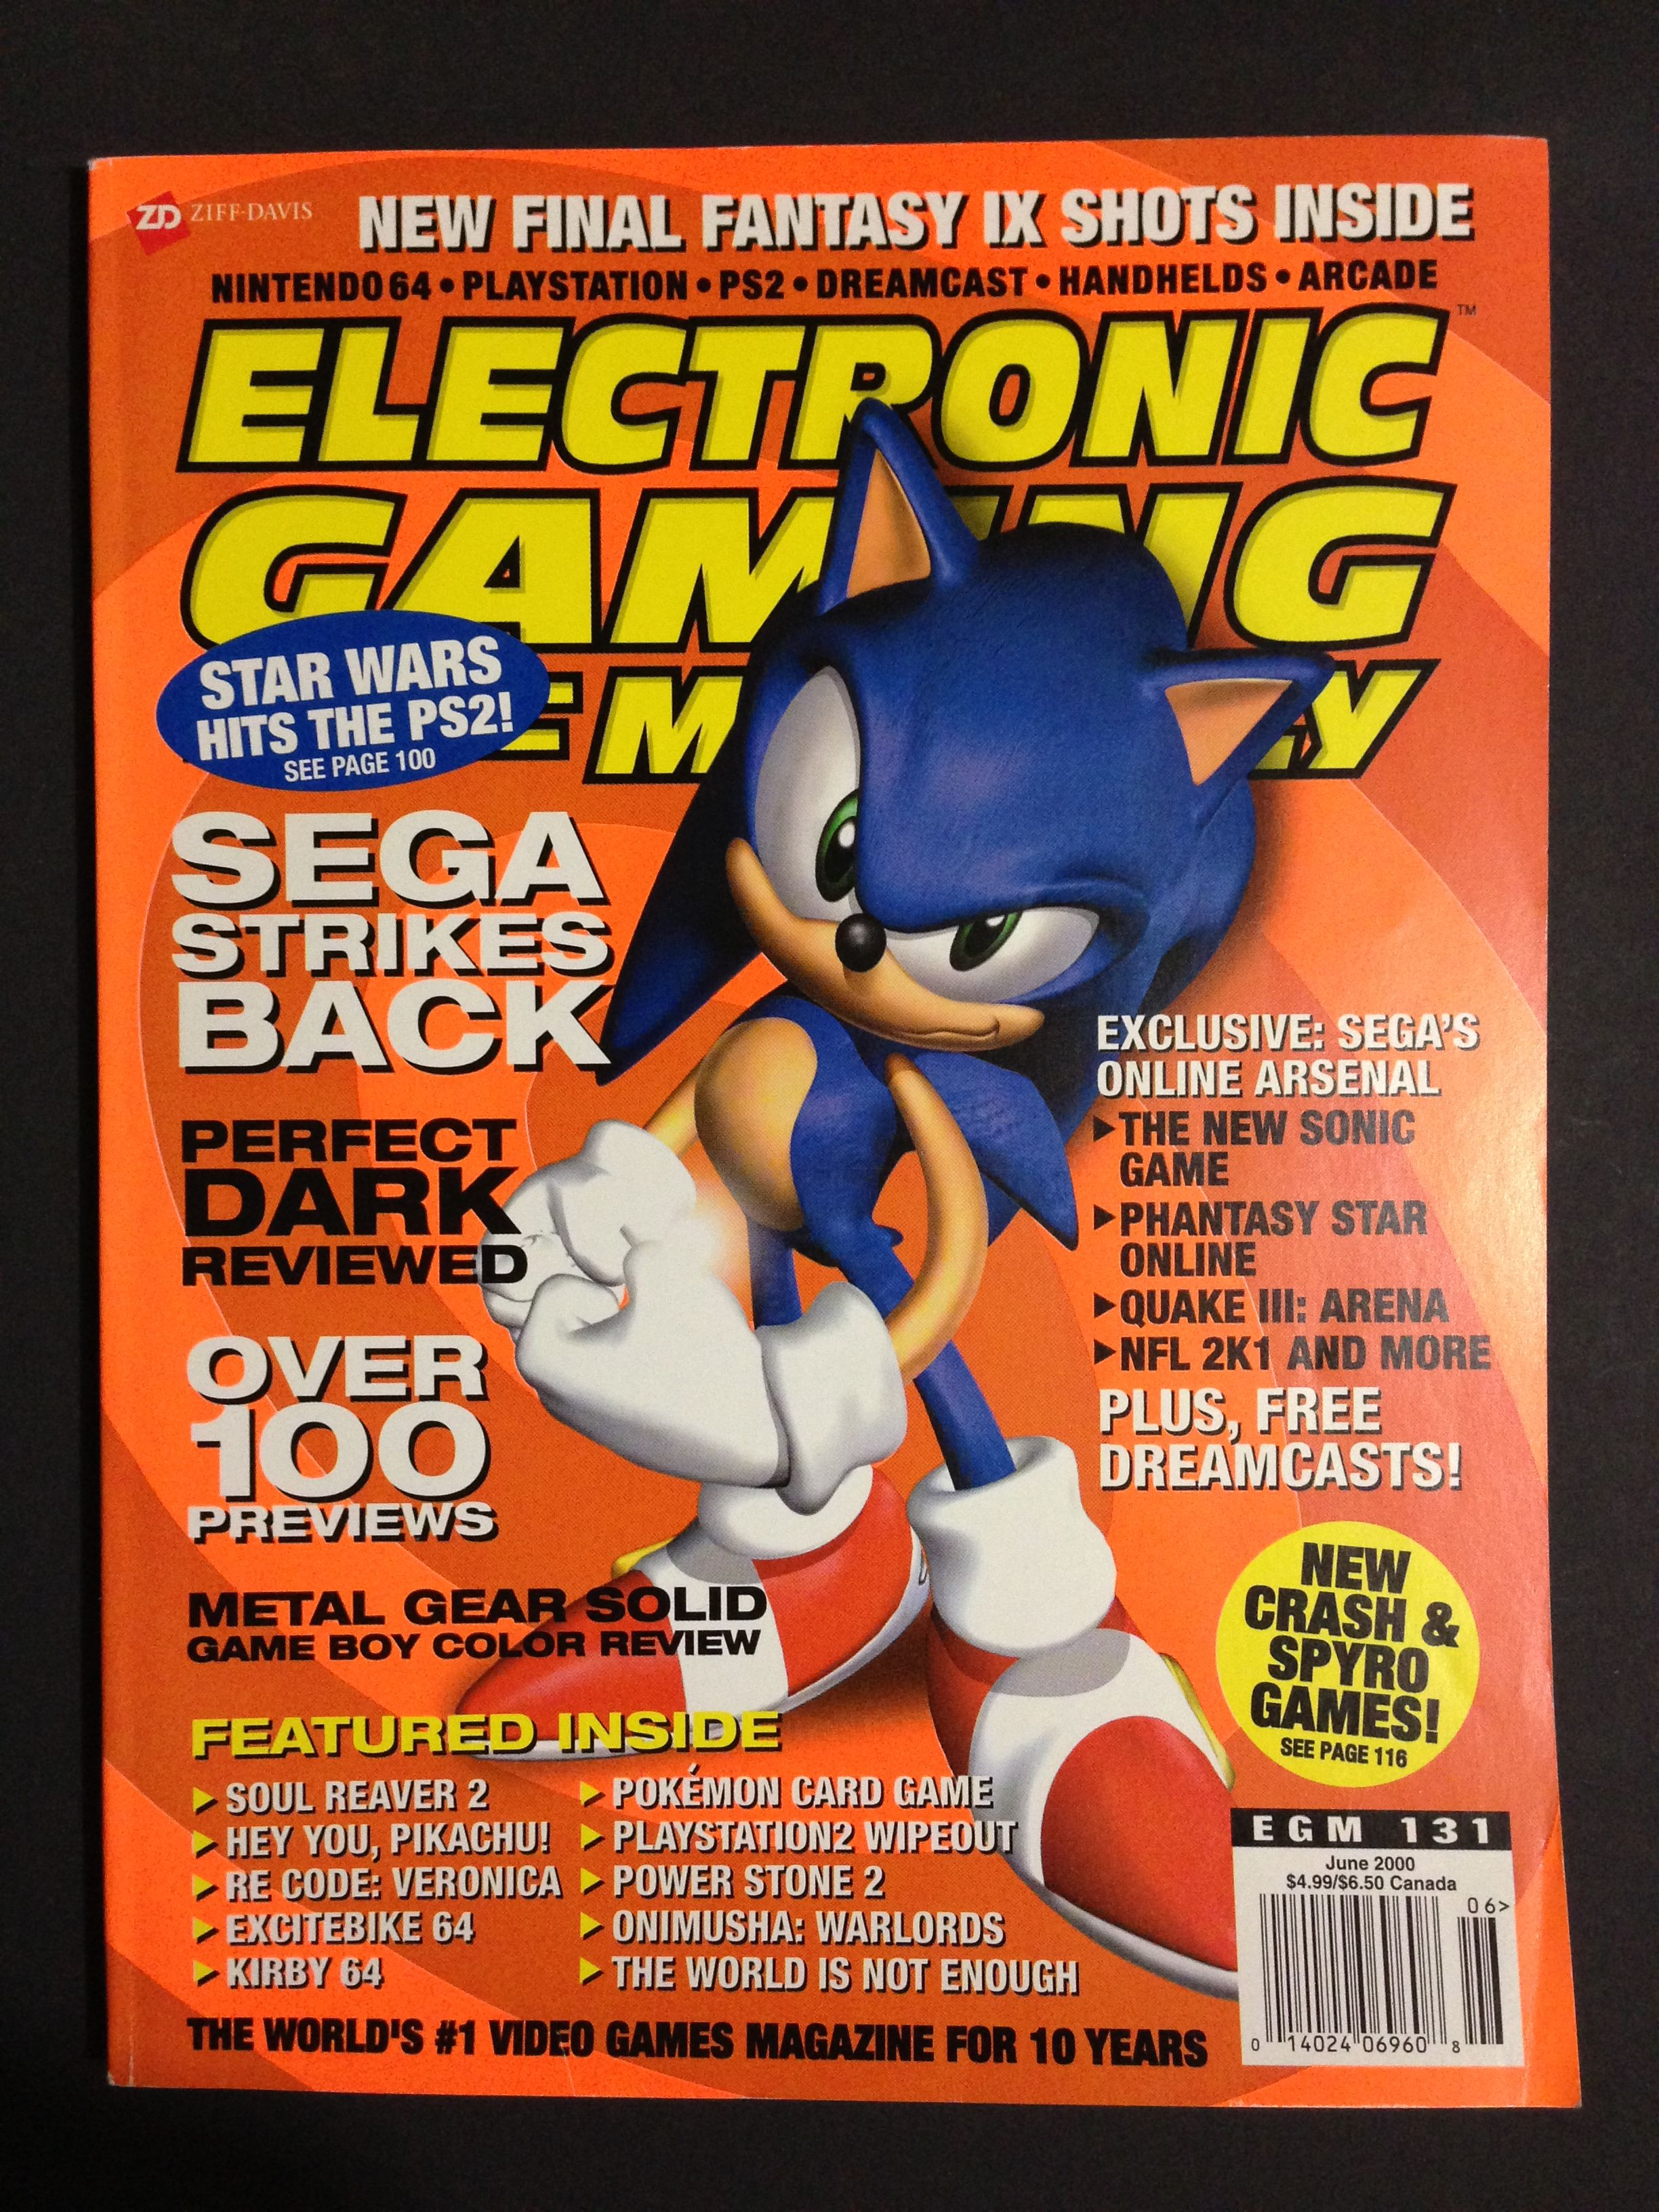 Game boy color online free - Electronic Gaming Monthly Or Egm Was A Magazine That I Subscribed To For Years As A